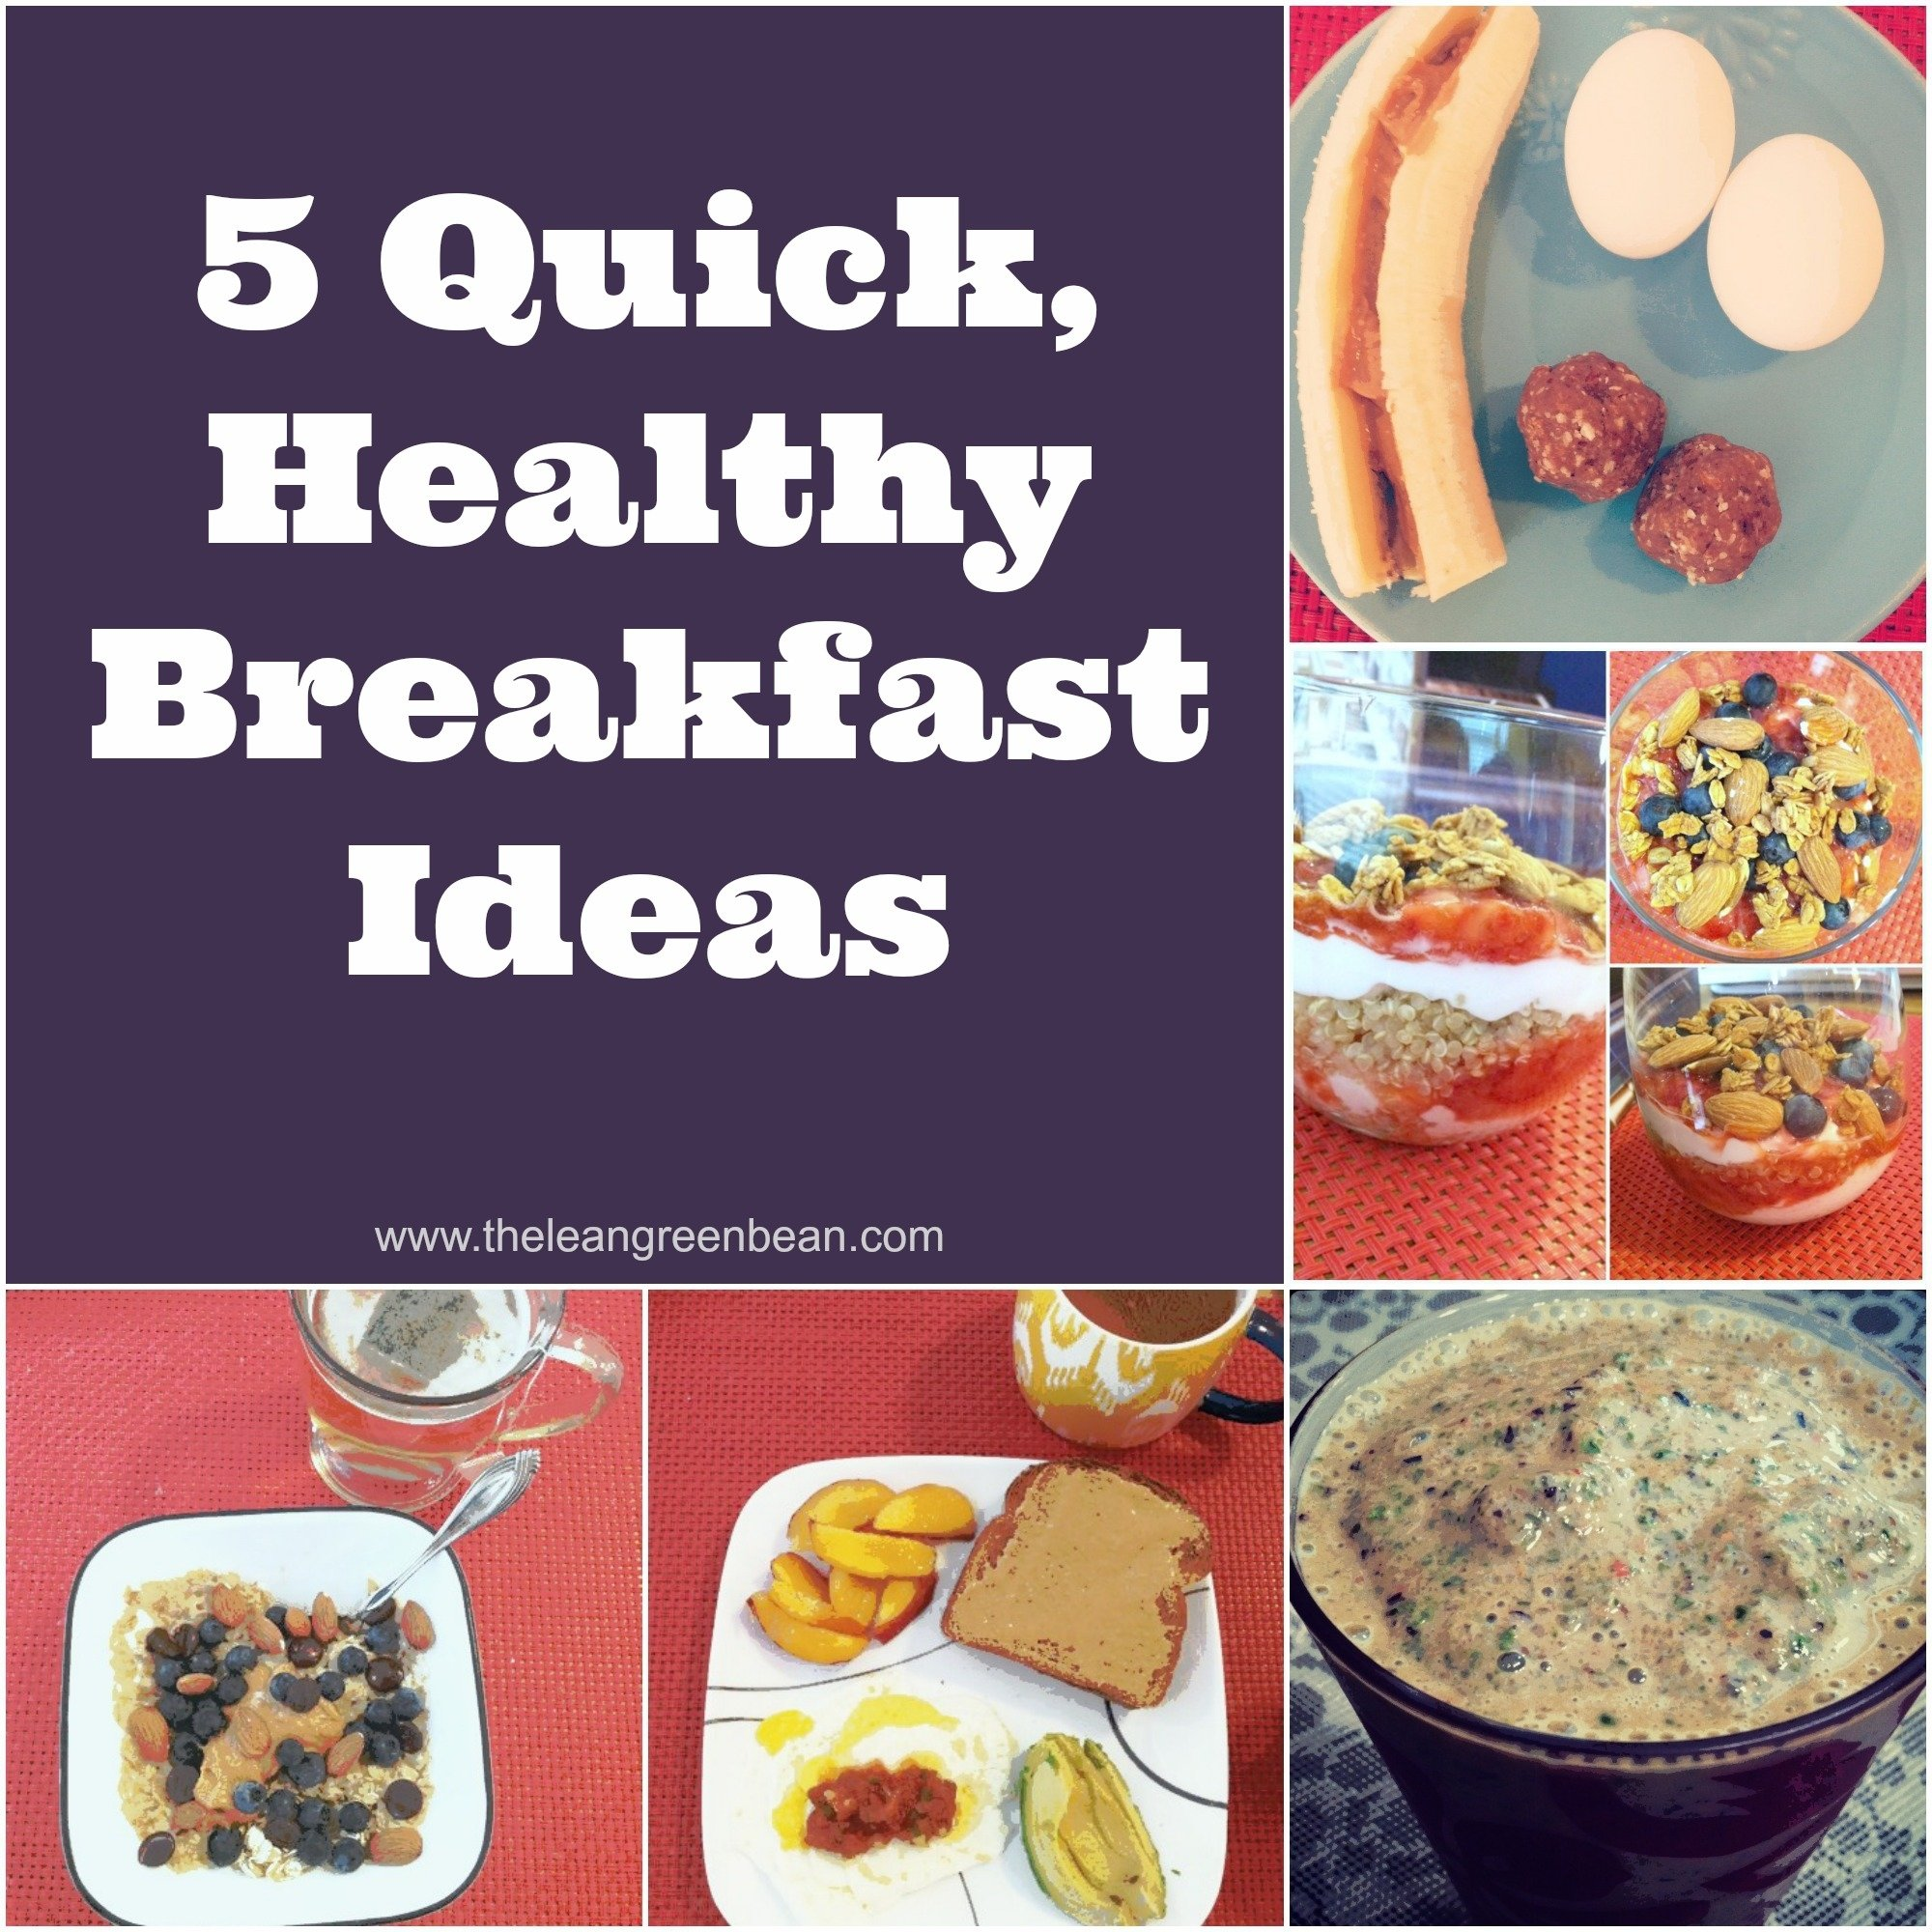 10 Trendy Healthy Breakfast Ideas On The Go quick healthy breakfast ideas from a registered dietitian 2020